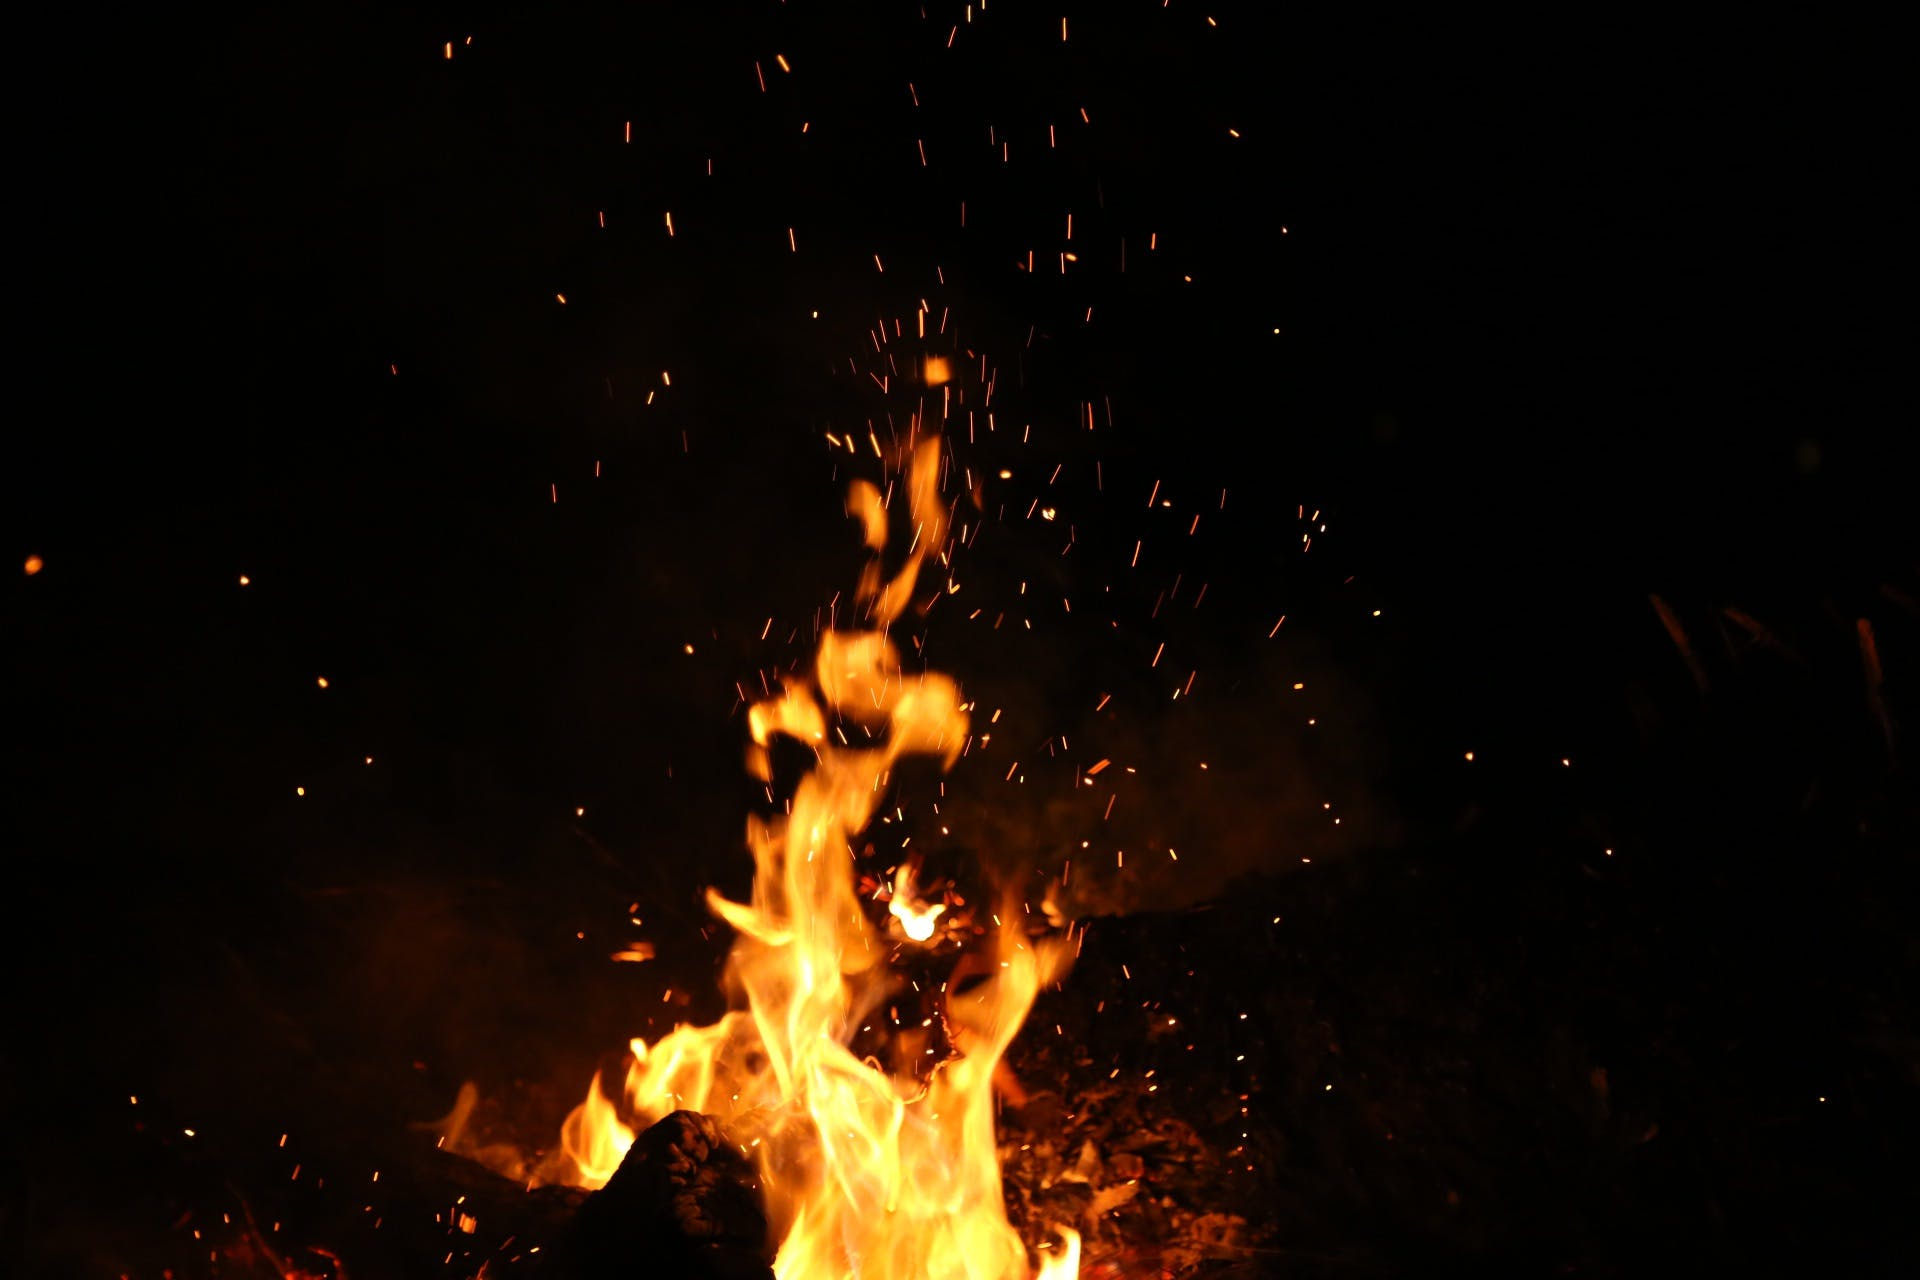 Free stock photo of night, dark, fire, burning